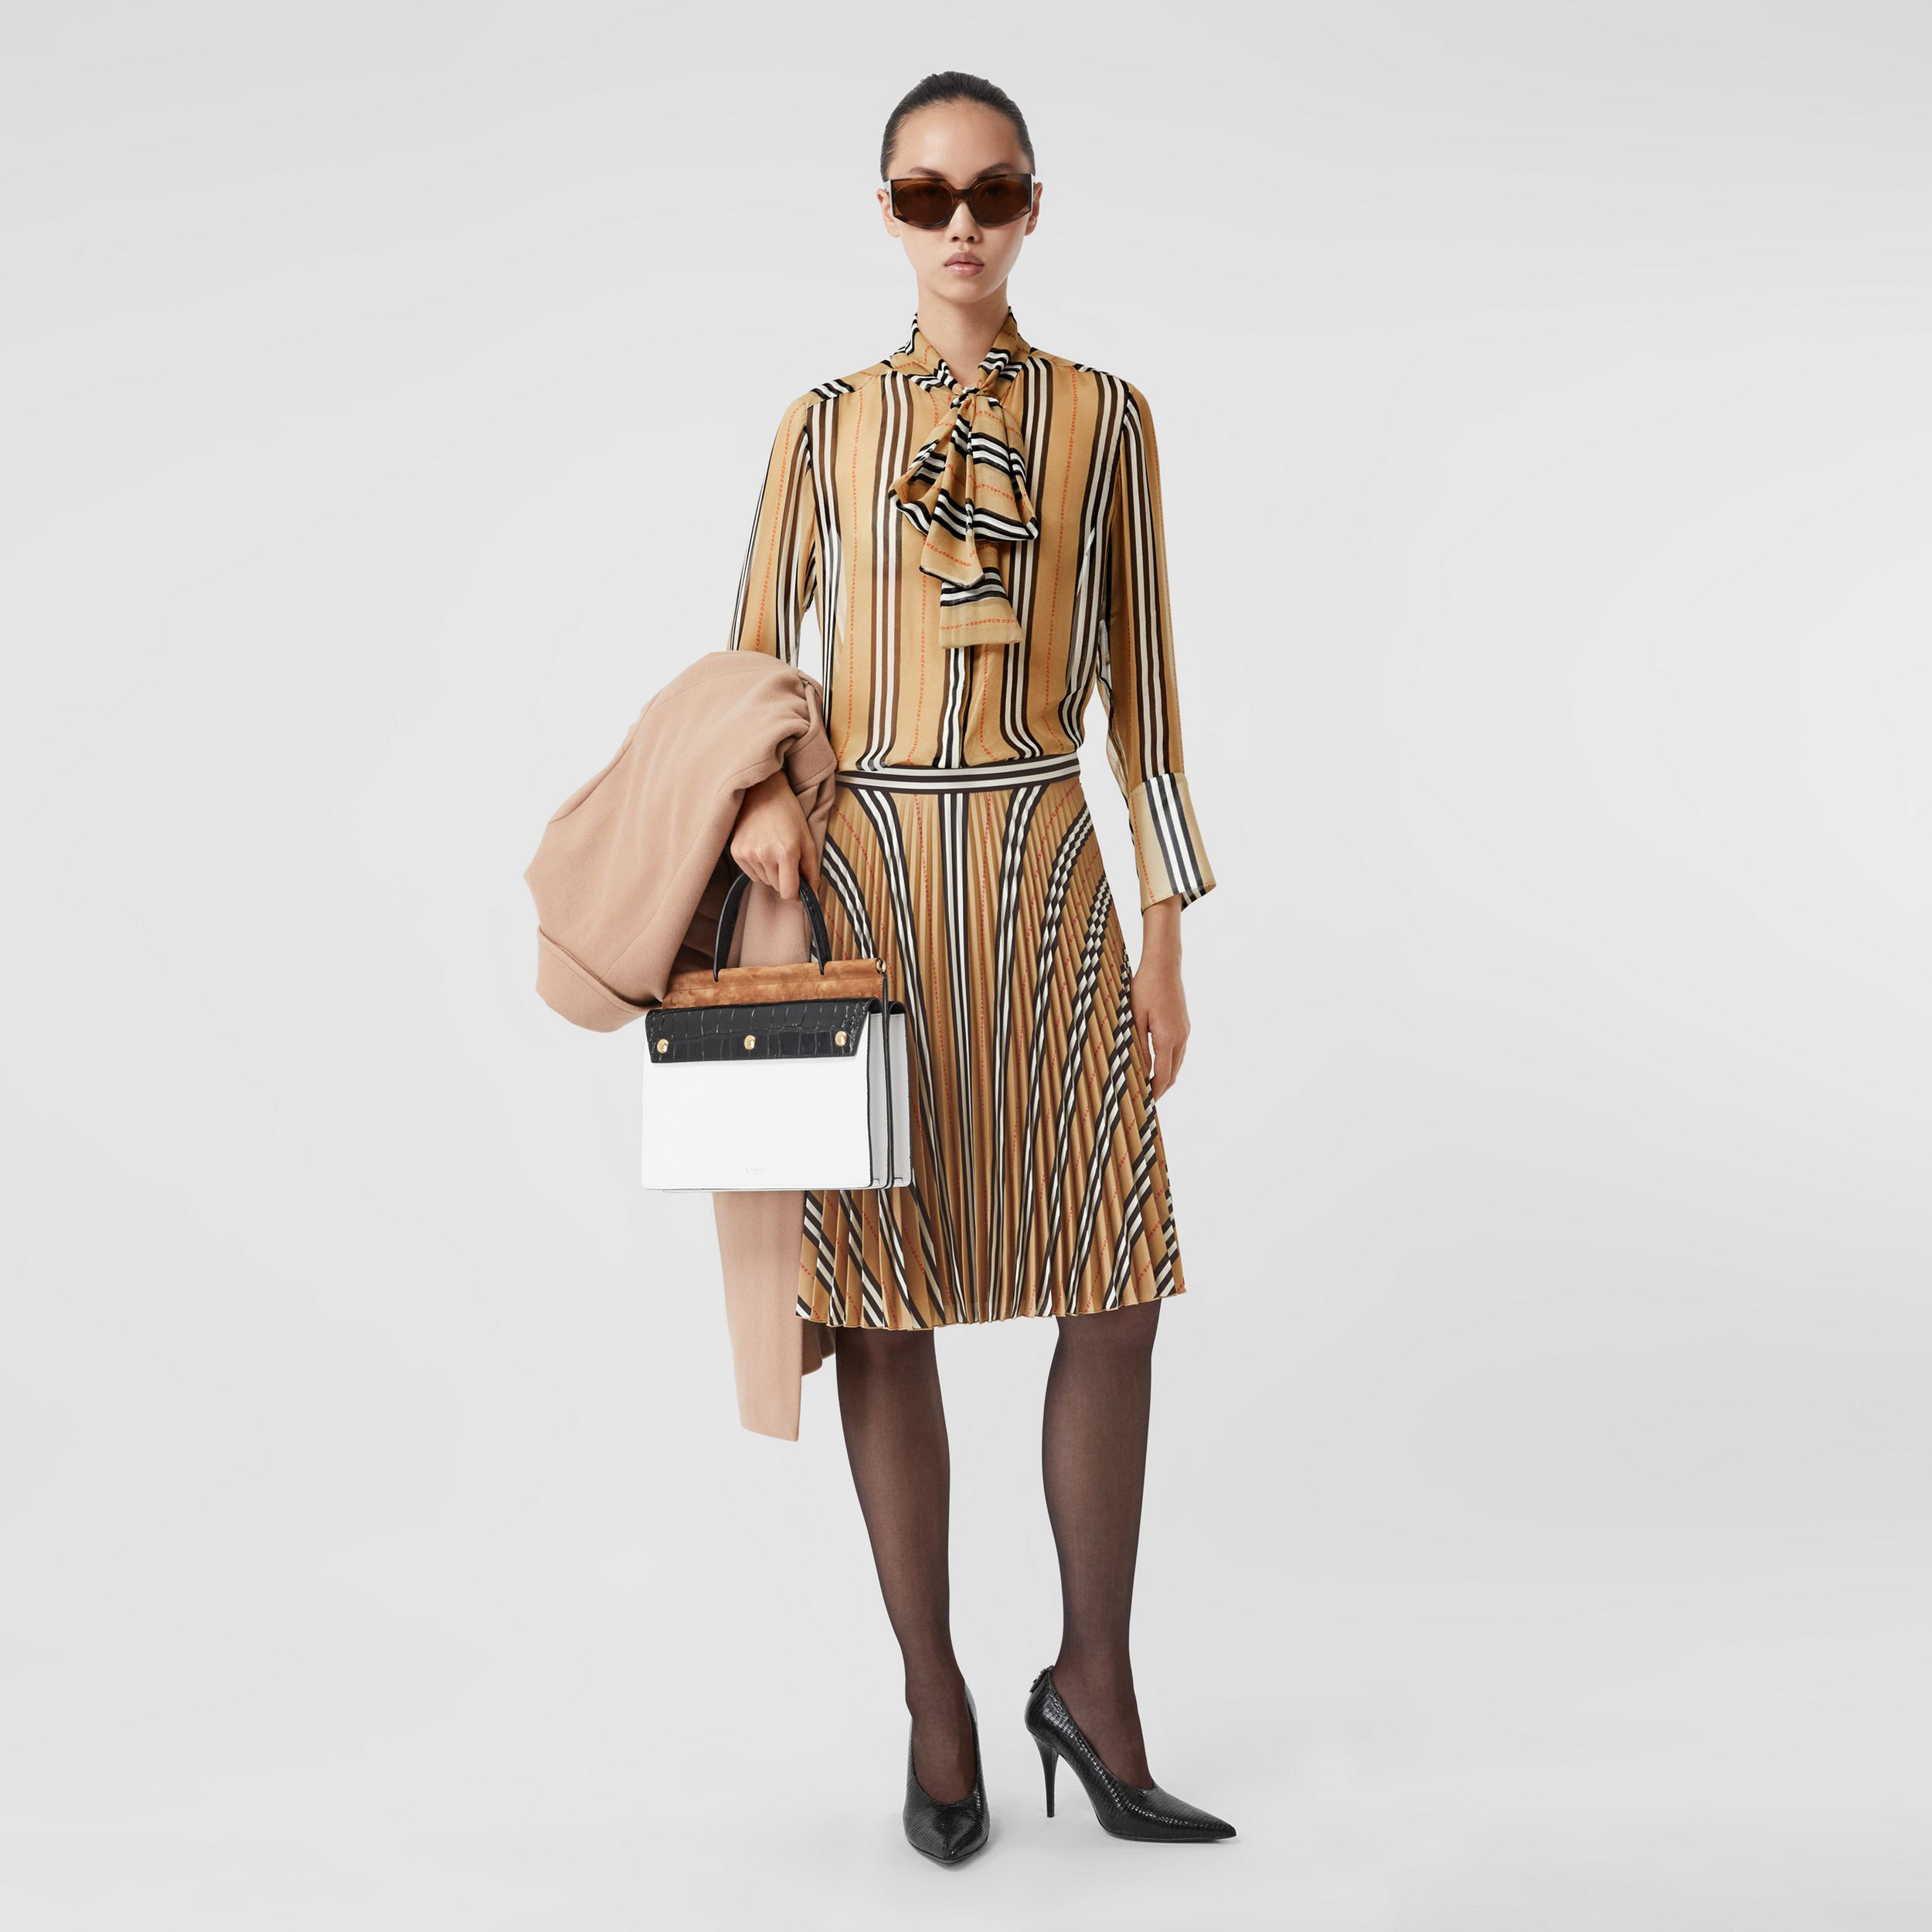 Logo and Stripe Print Crepe Pleated Skirt in Archive Beige - Women | Burberry United States - 1